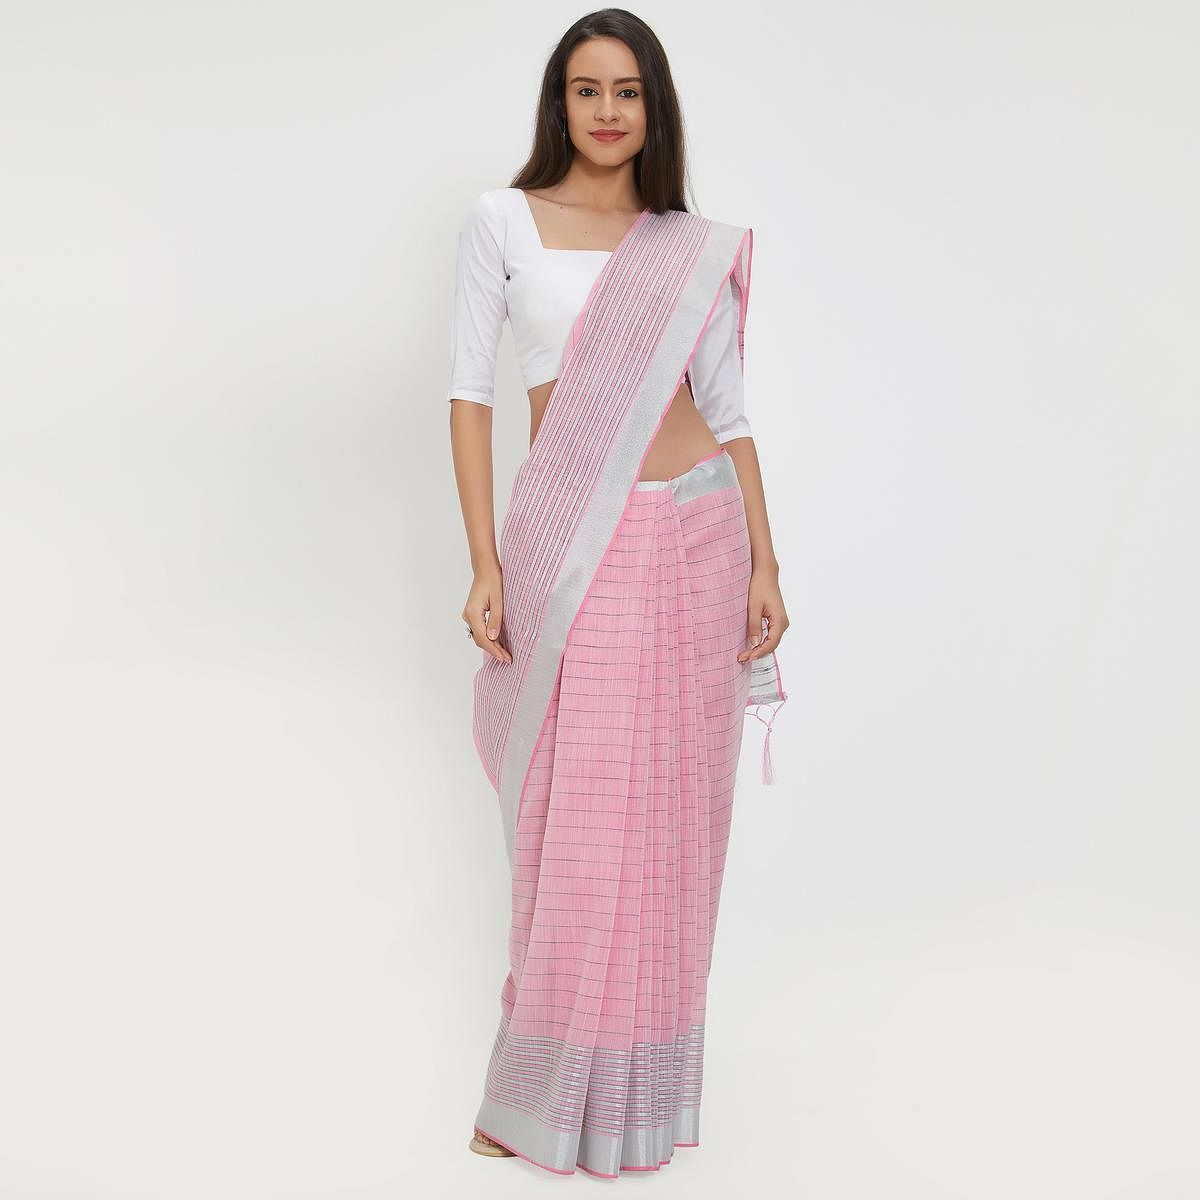 Dashing Pink Colored Casual Wear Linen Saree With 2 Blouse Pieces